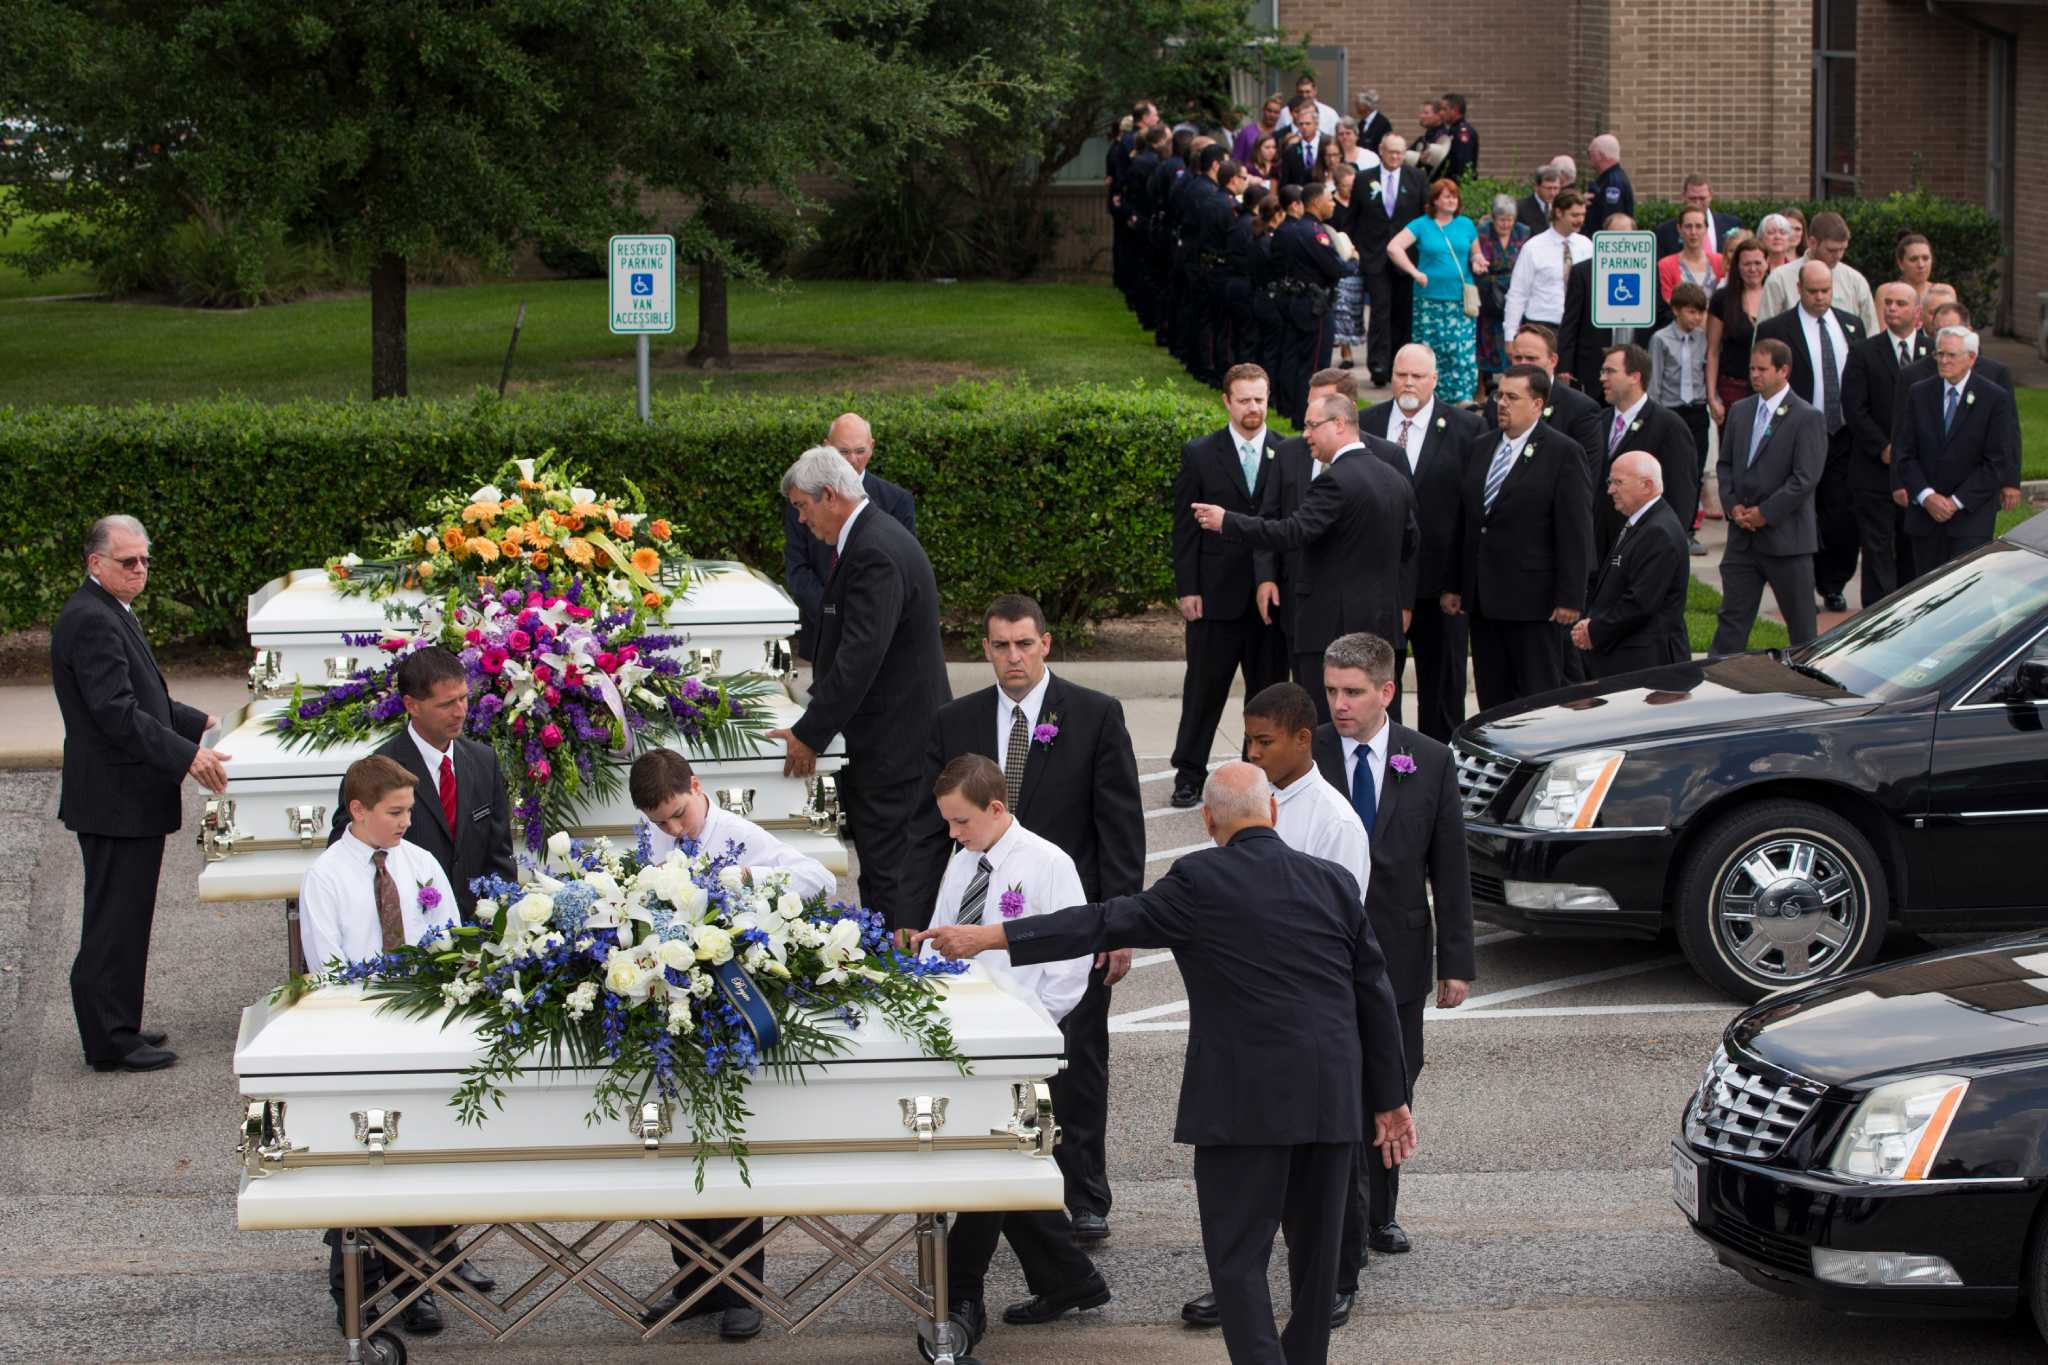 Stay funeral shows lds customs houstonchronicle izmirmasajfo